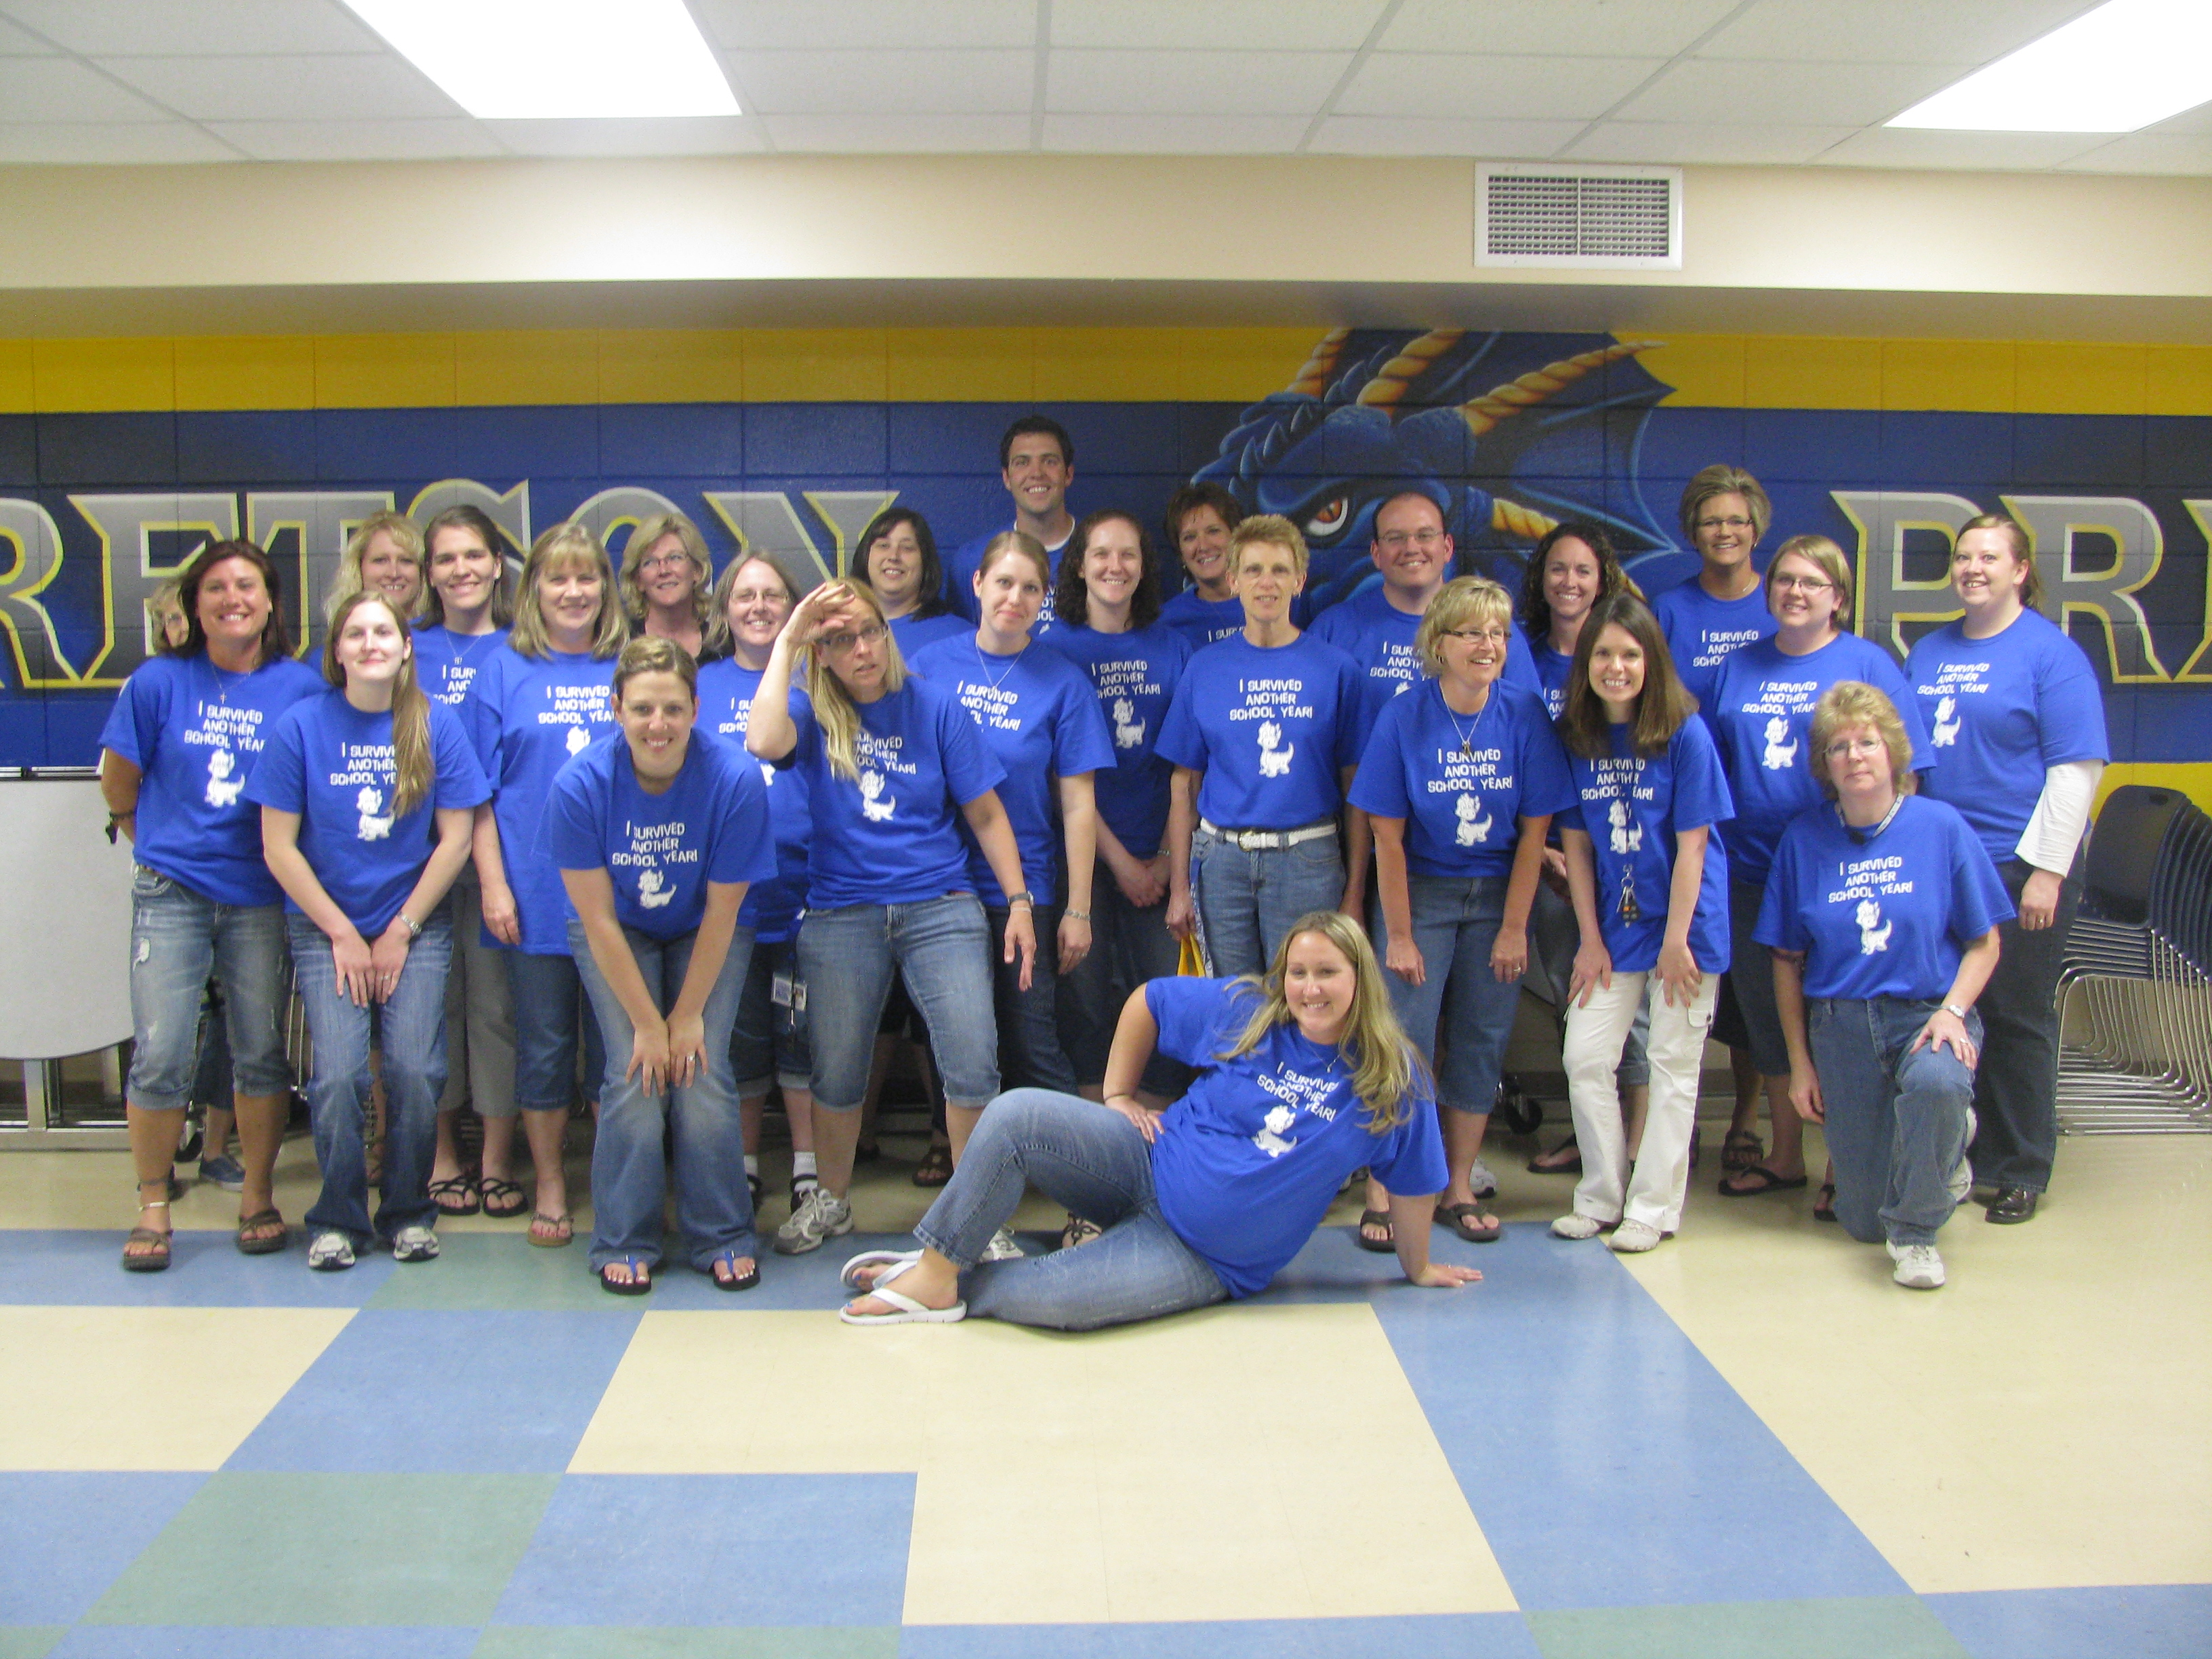 T shirt design ideas for schools - We Survived Another School Year T Shirt Photo